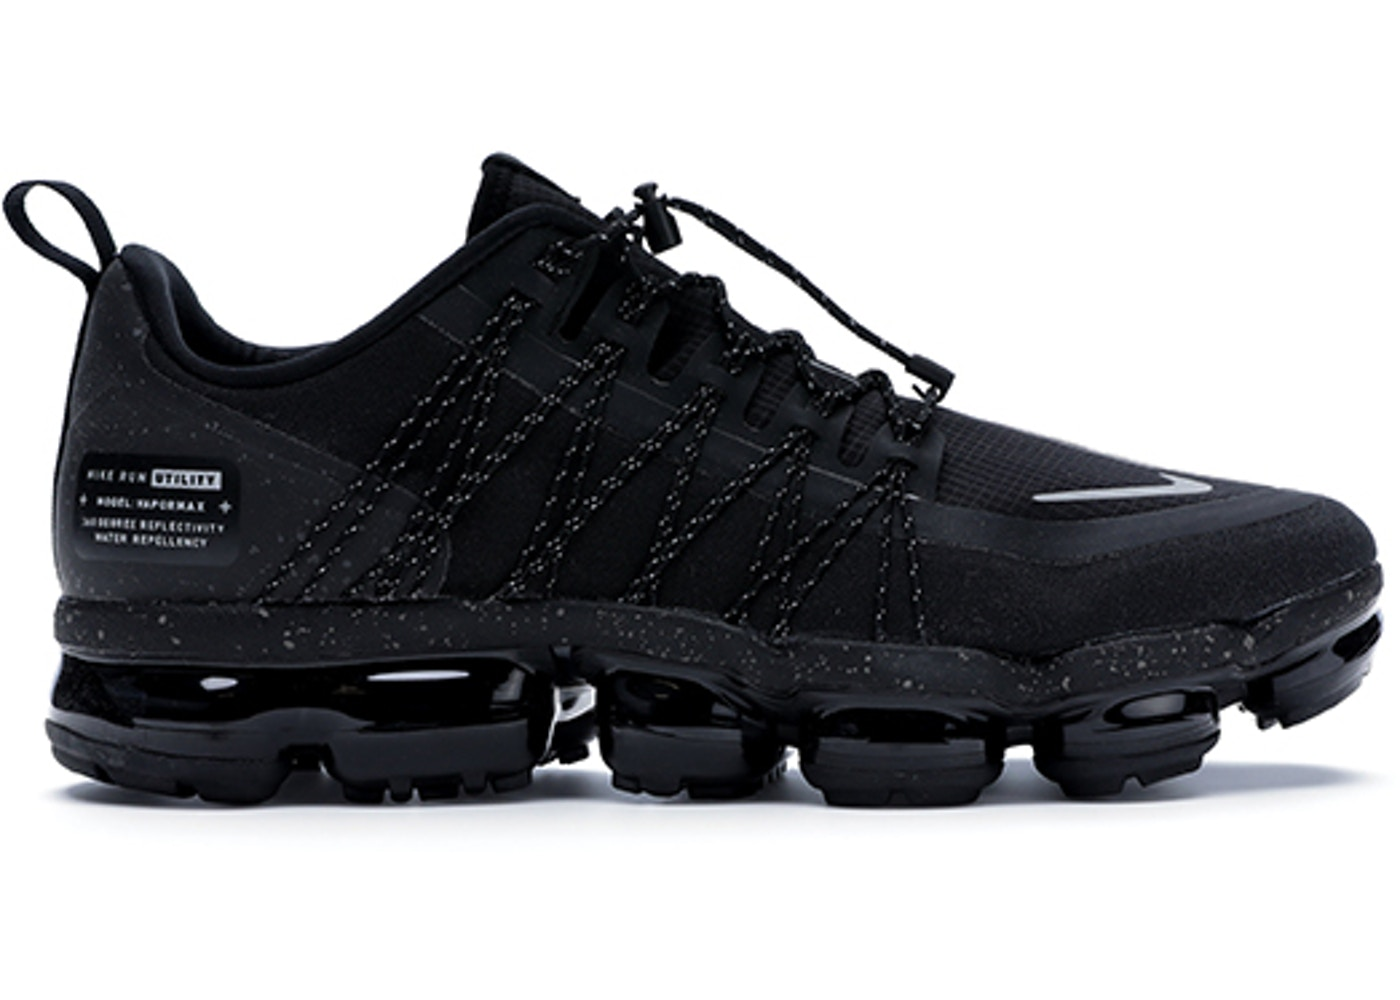 4957de8f66e3 Buy Nike Air Max VaporMax Shoes   Deadstock Sneakers